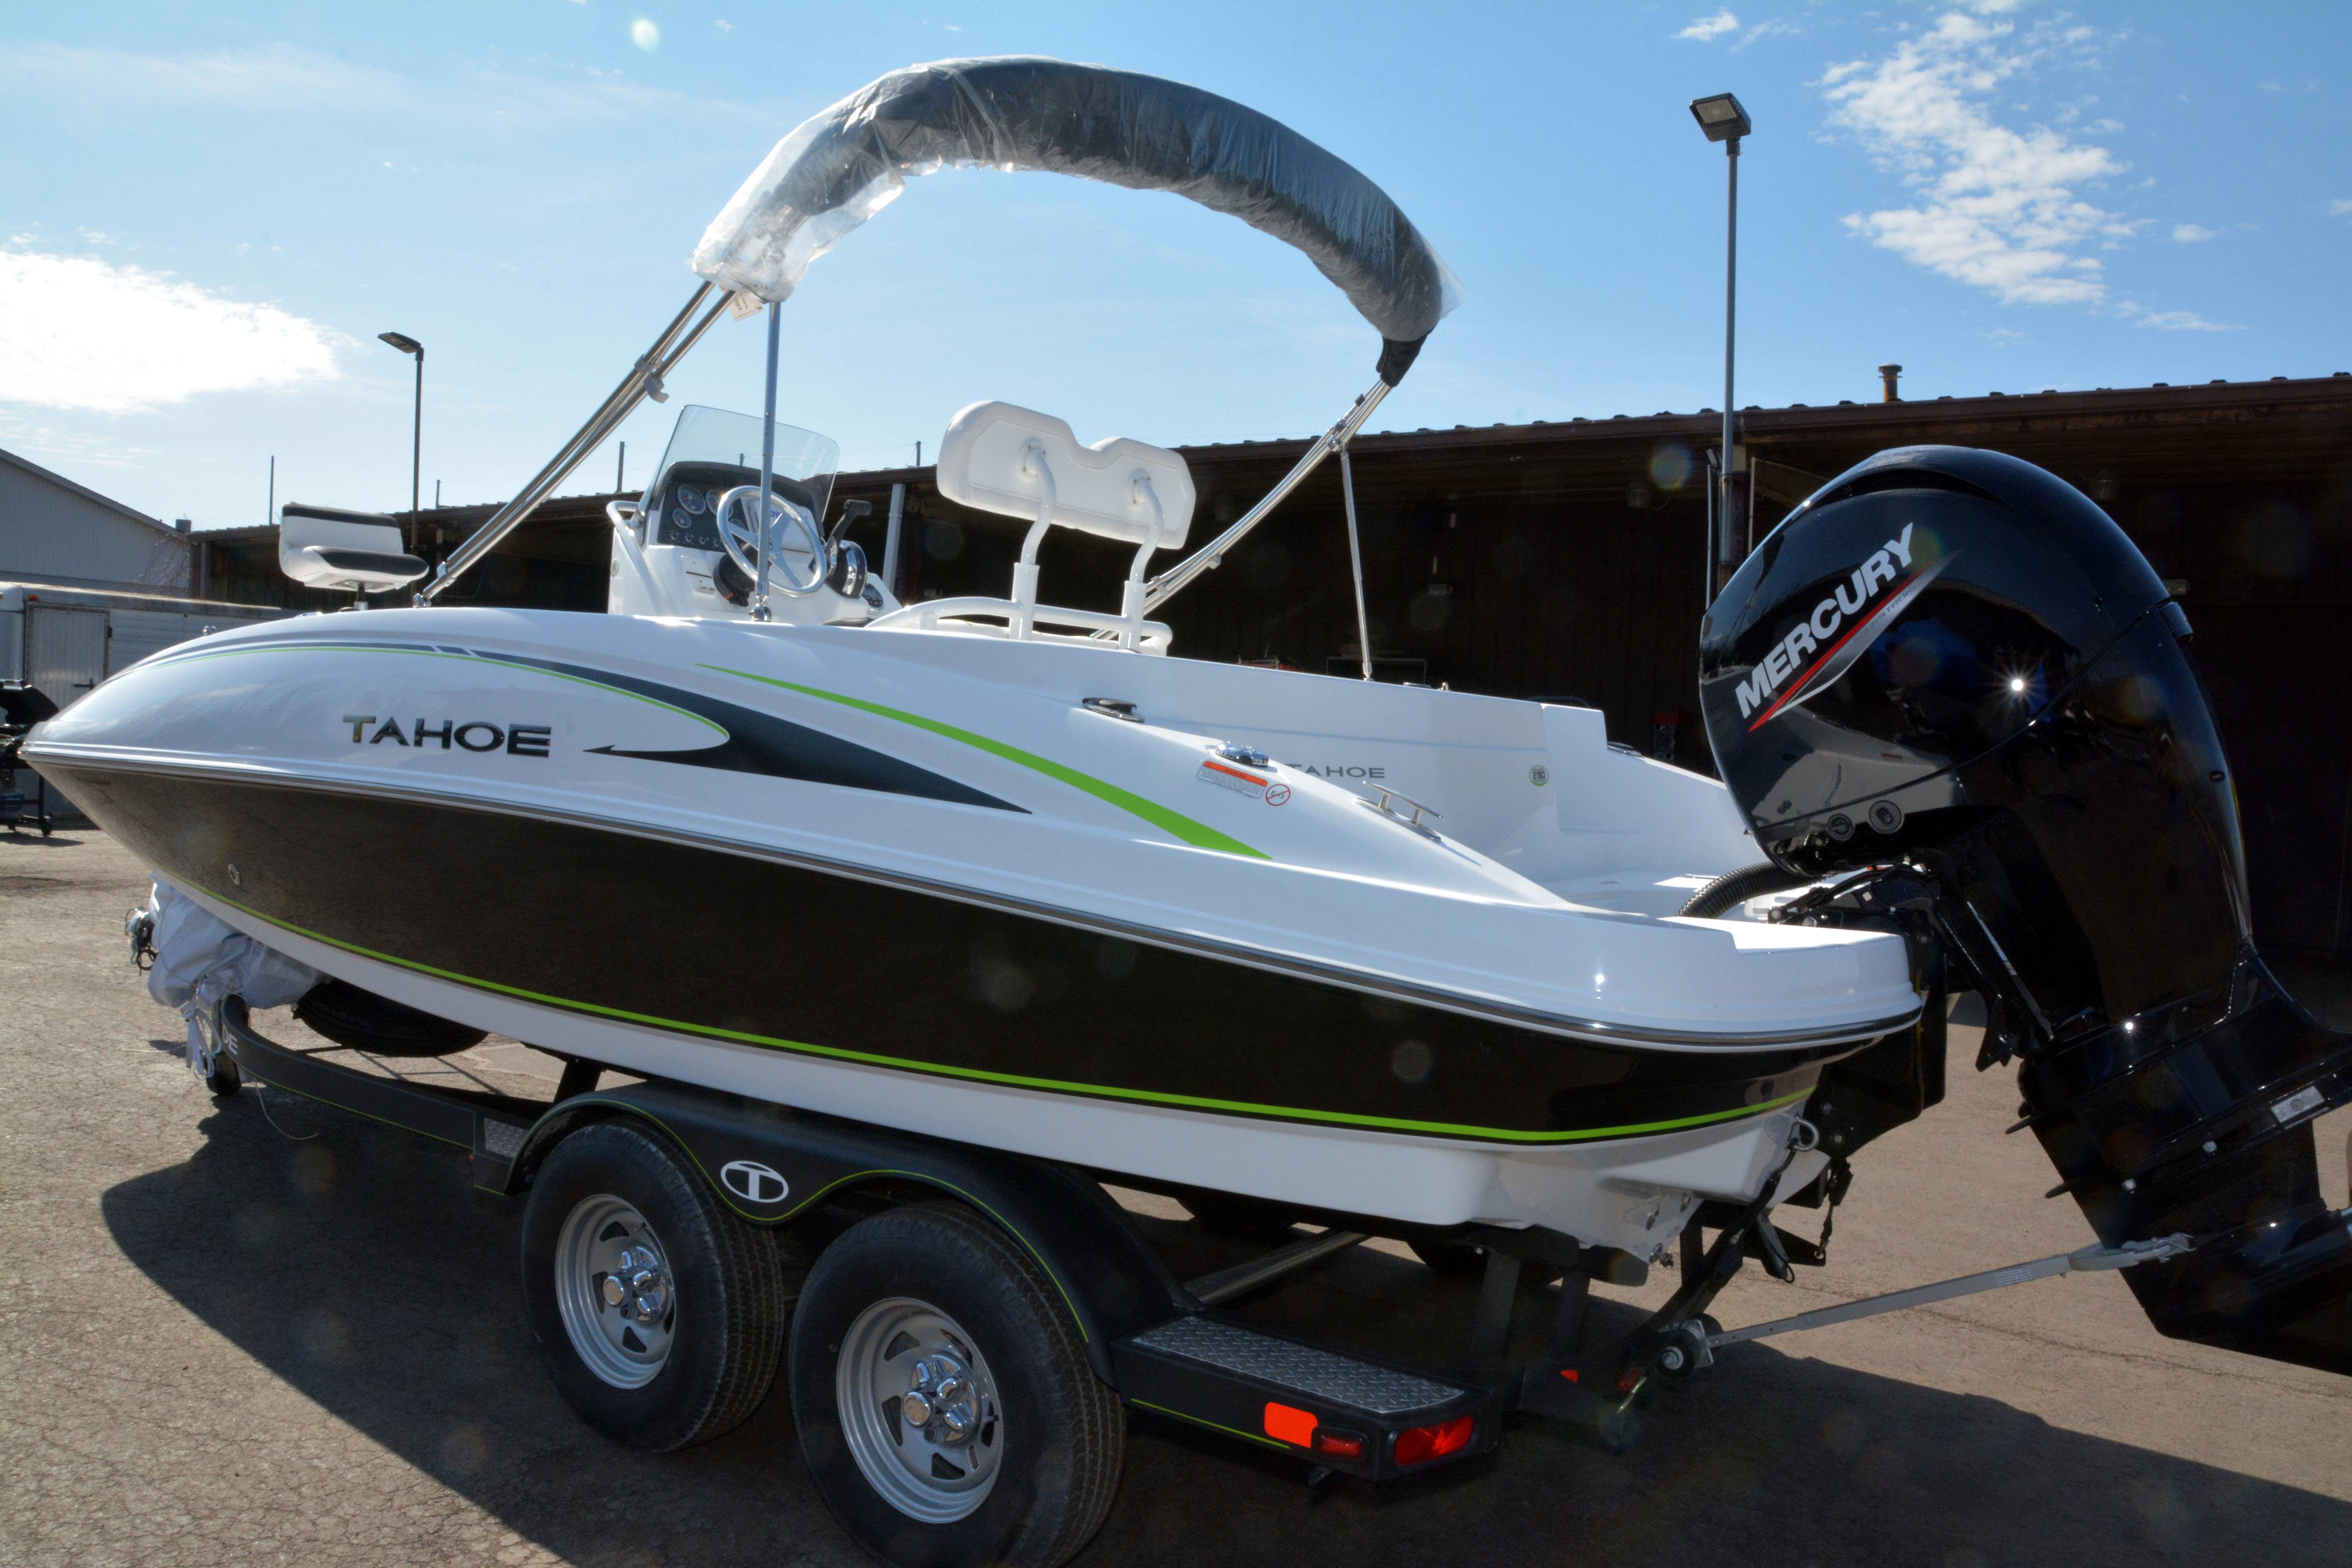 2020 Tahoe boat for sale, model of the boat is 2150 CC & Image # 13 of 50